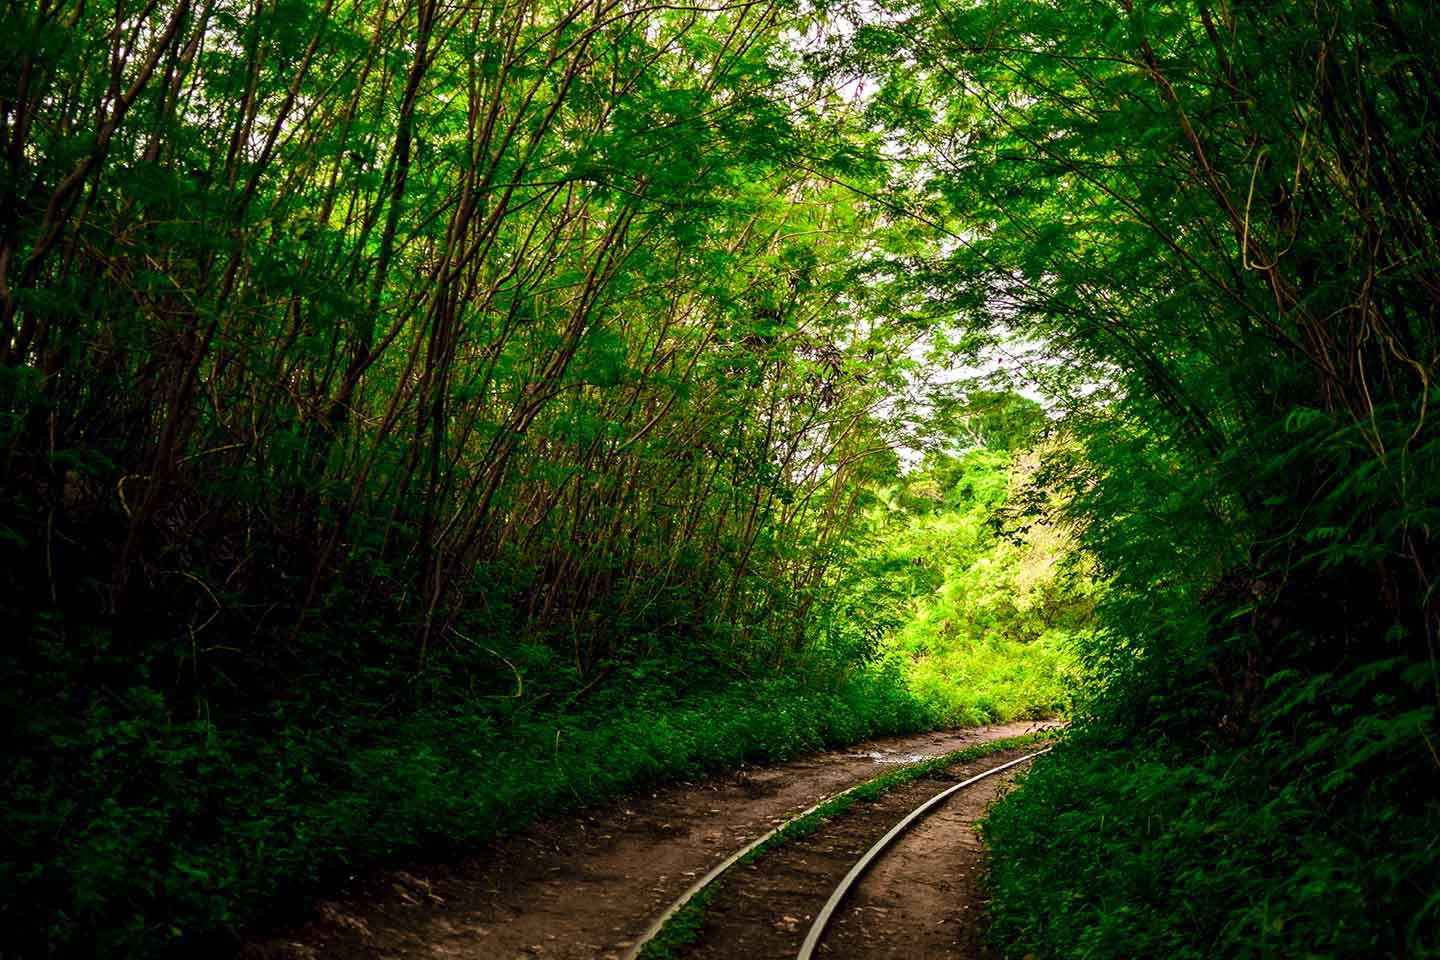 Curved track through the forest